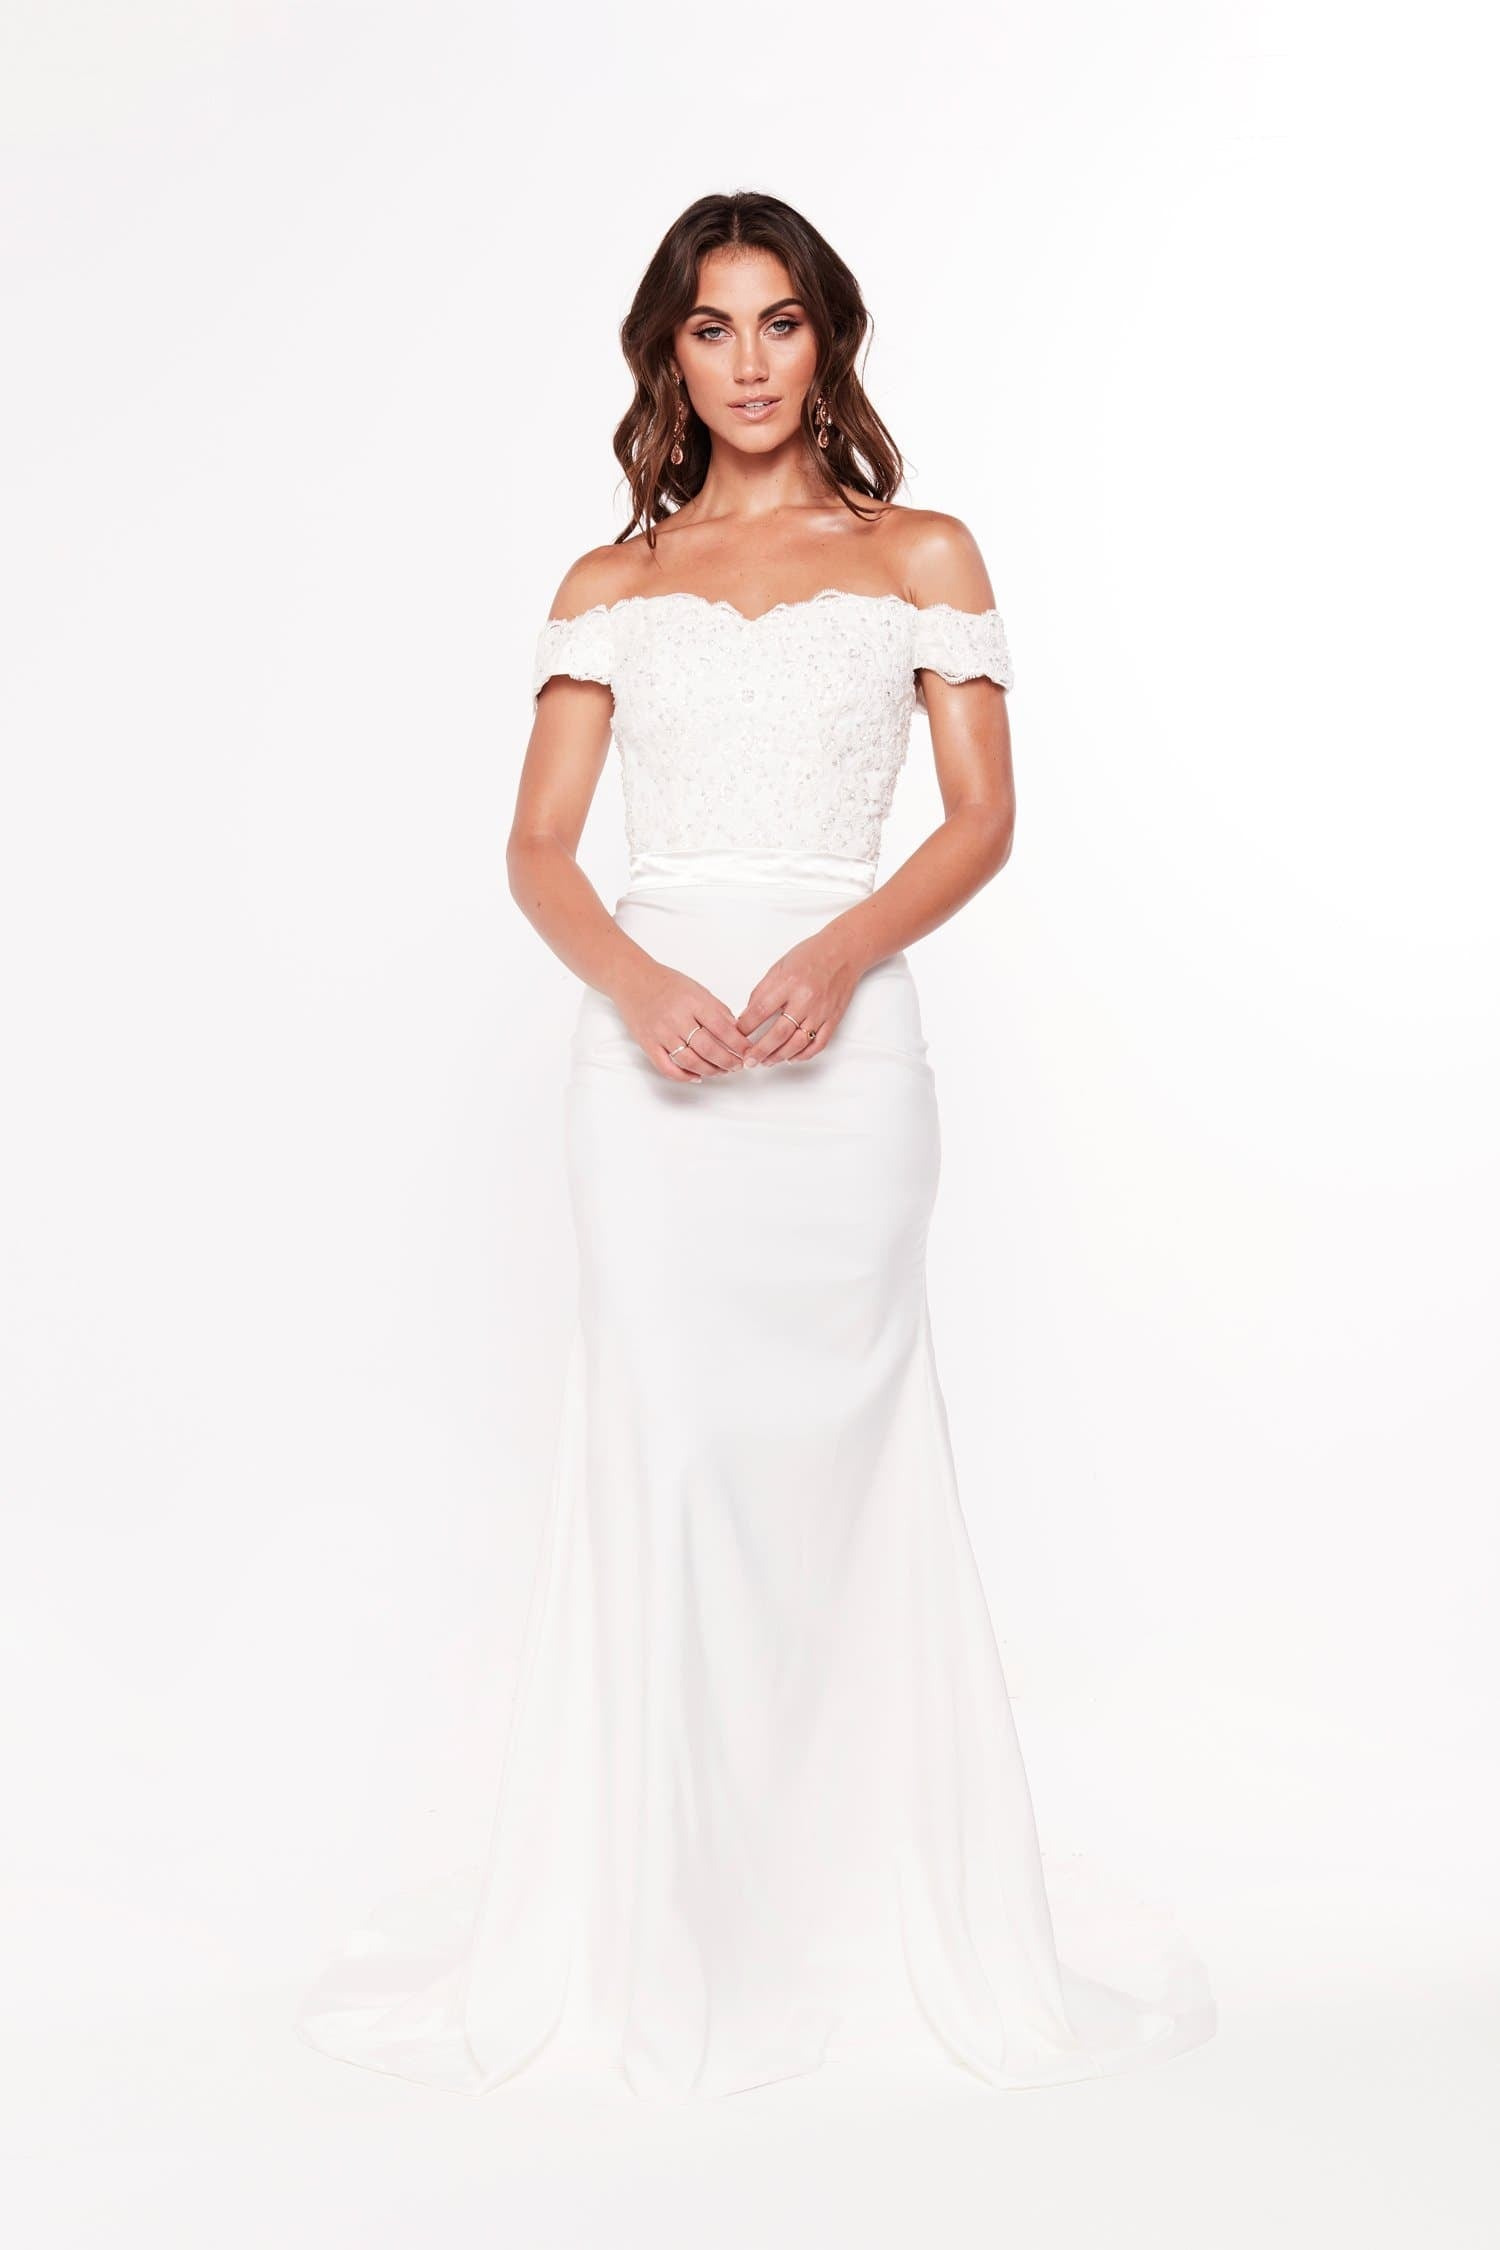 A&N Sandy - White Lace Off-Shoulder Gown with Beaded Bodice